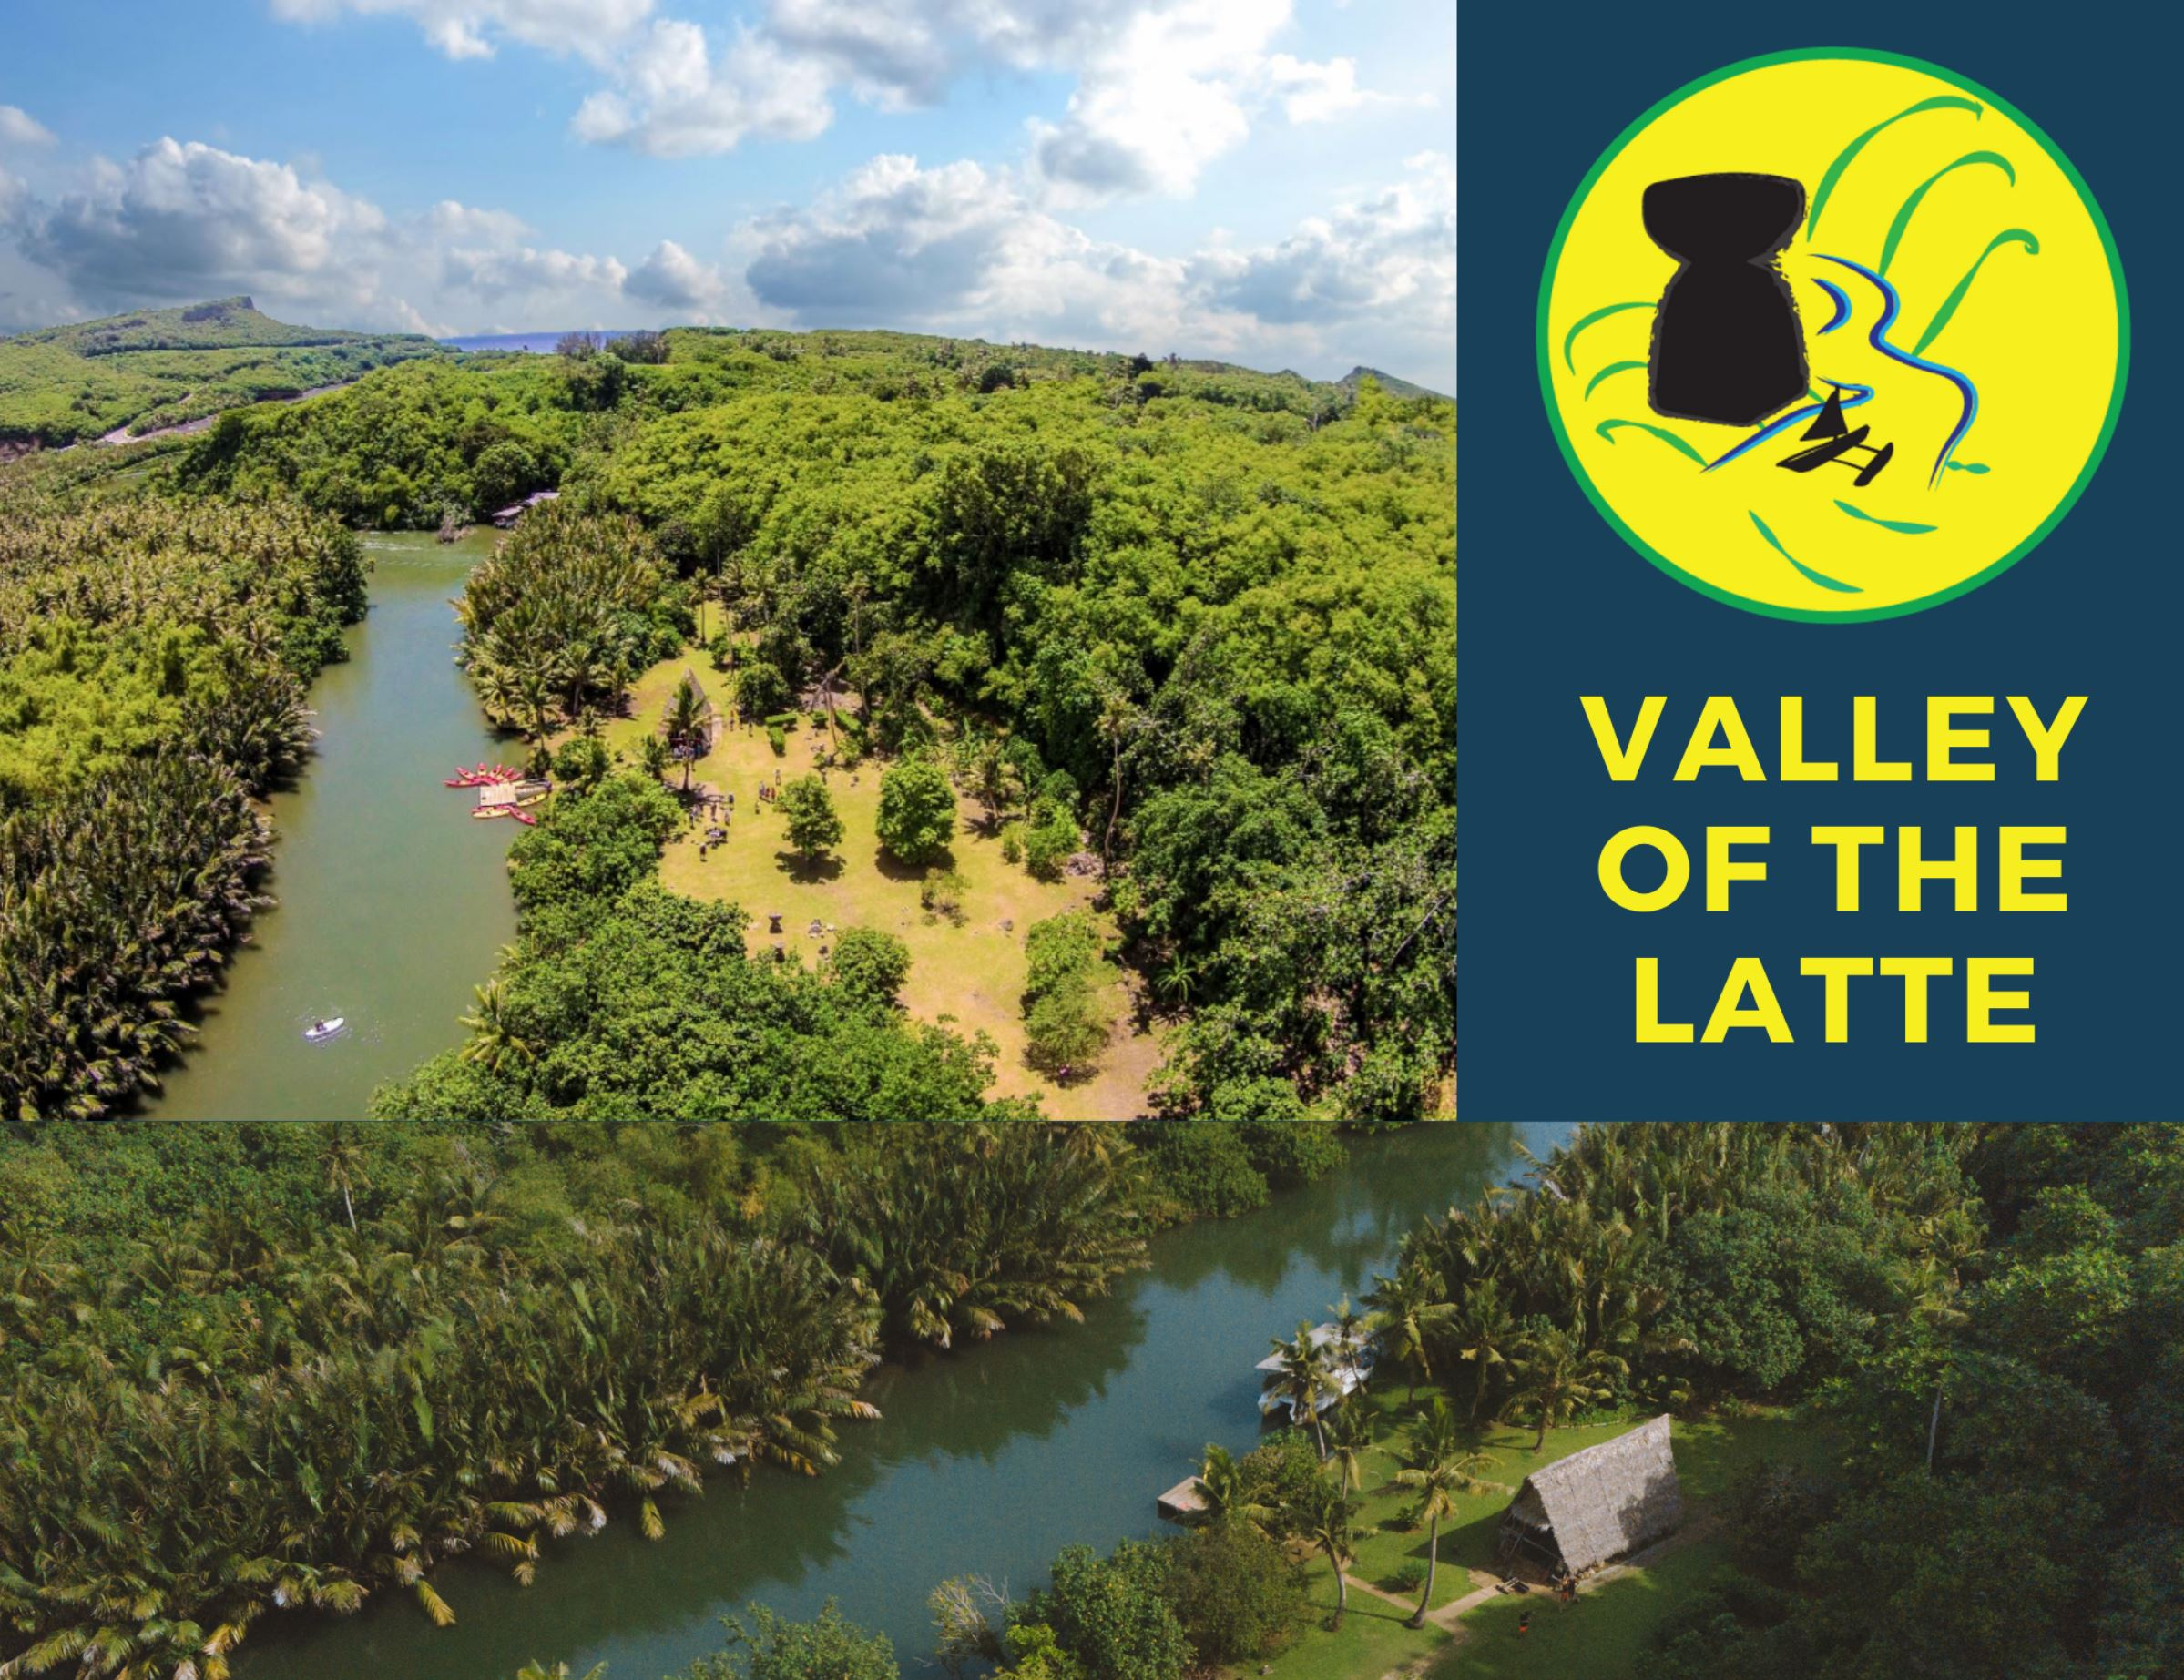 Valley of the Latte Corporate Events, the perfect company retreat, meeting, or gathering on Guam